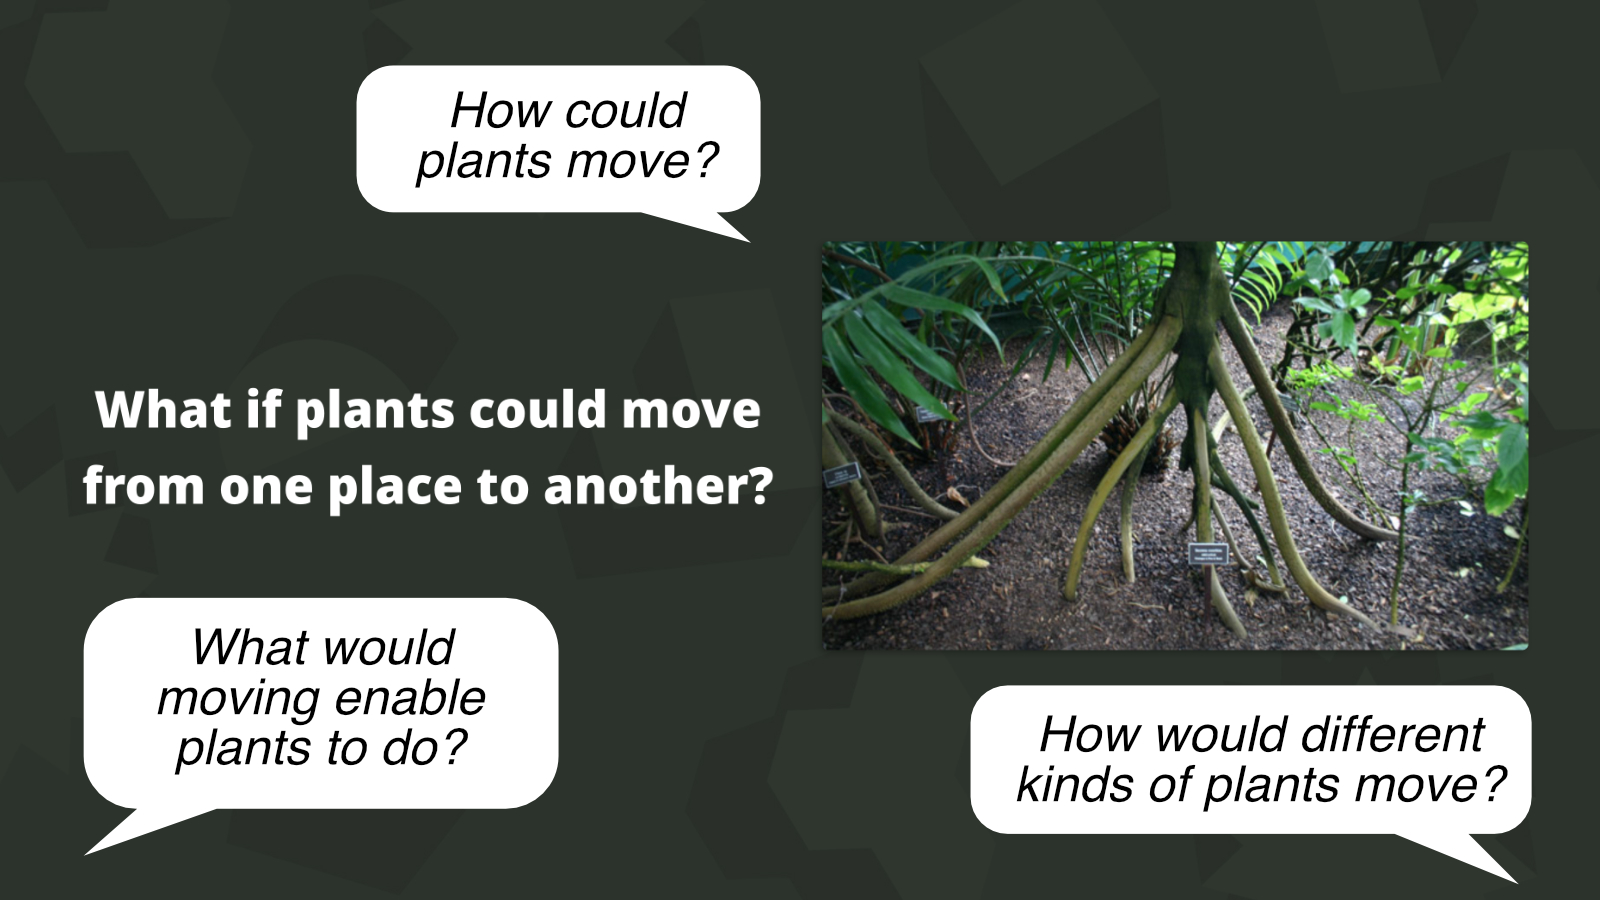 What if plants could move from one place to another? is an example of a 'What if?' activity.